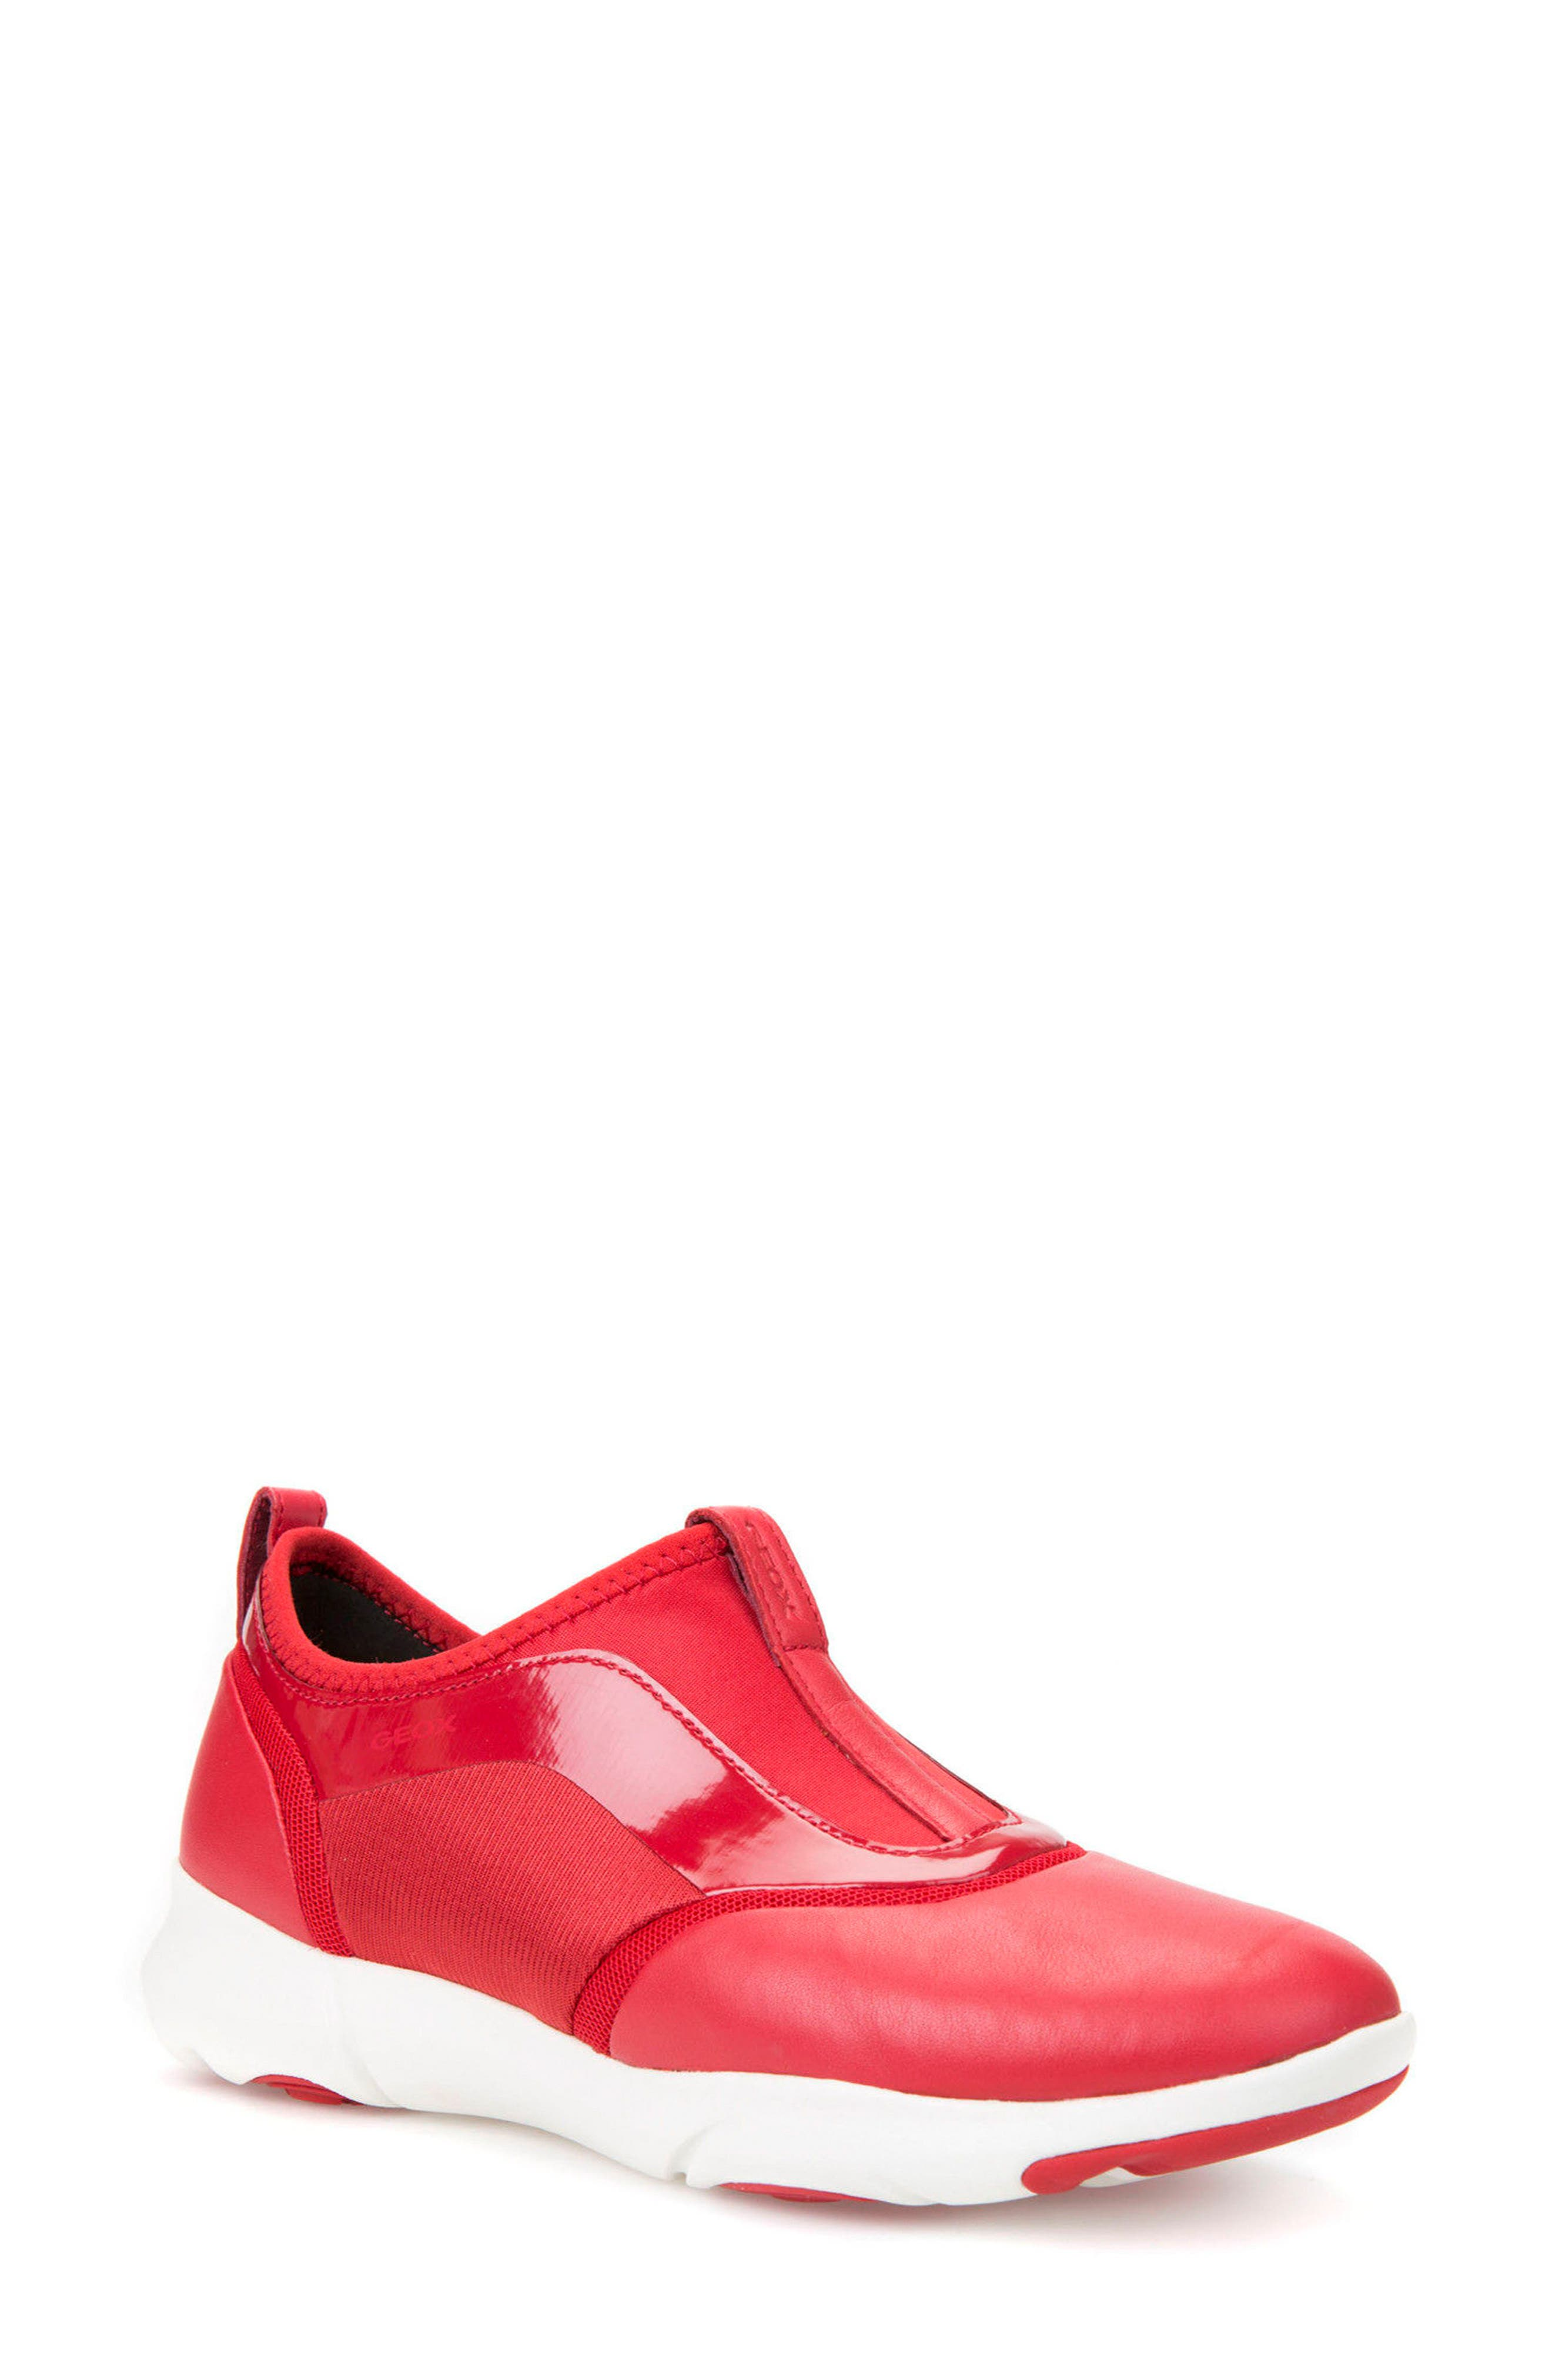 Nebula S Slip-On Sneaker,                         Main,                         color, Red Leather